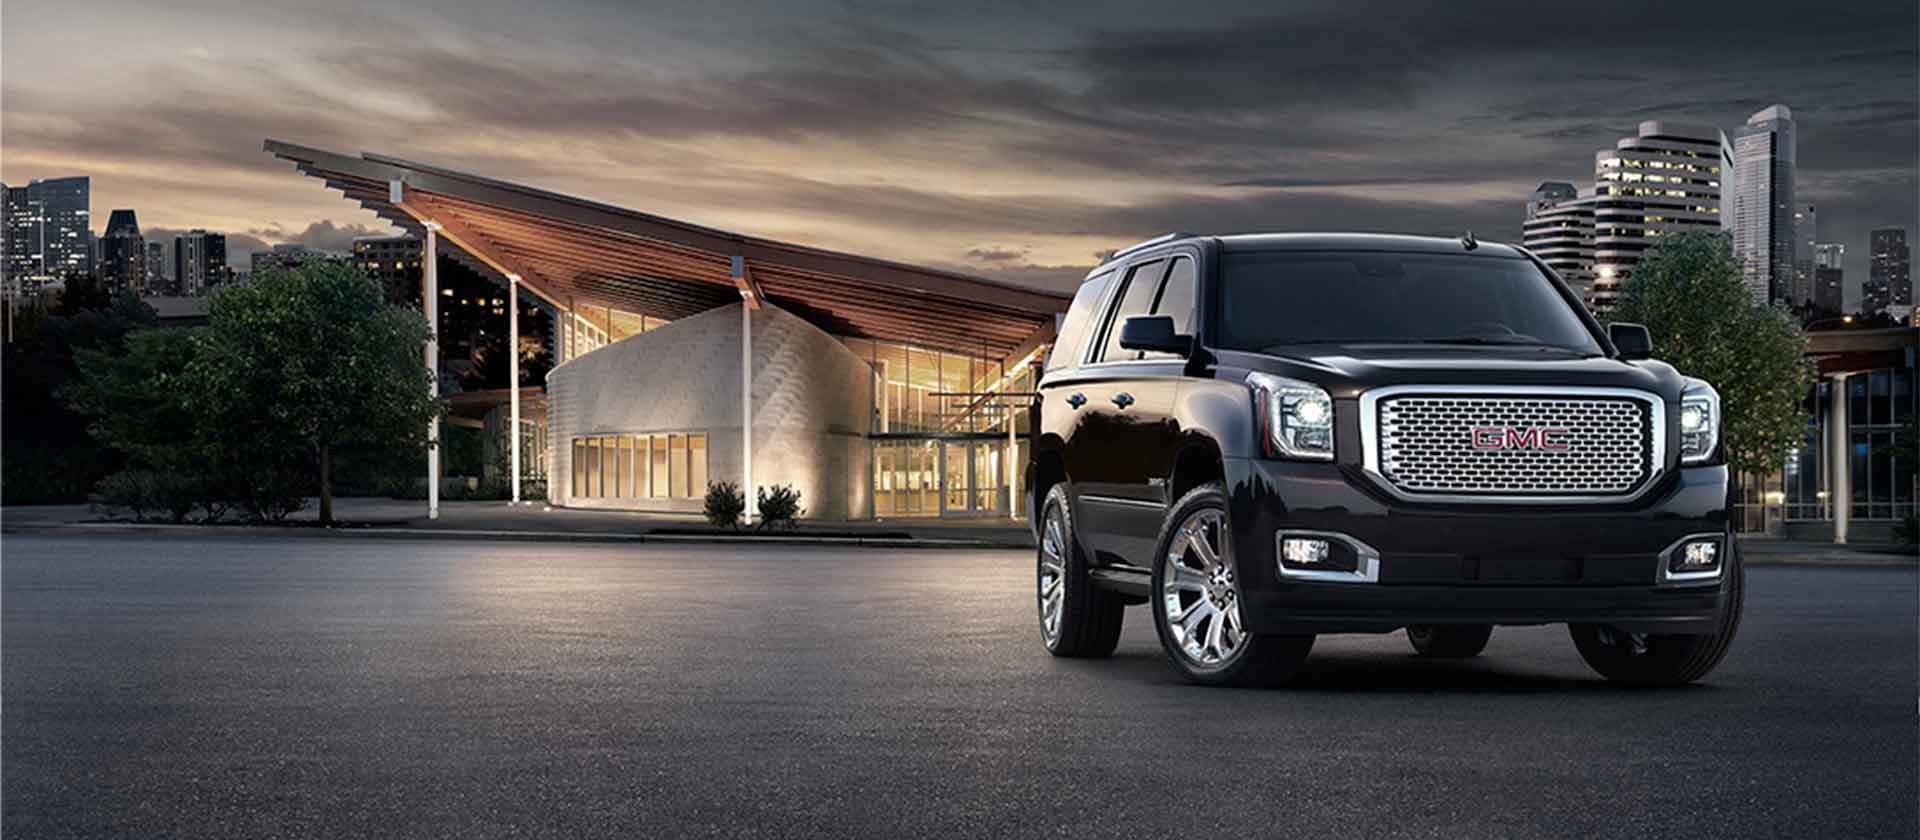 KJO27   Gmc HD Wallpapers 27 Computer Backgrounds 1920x840